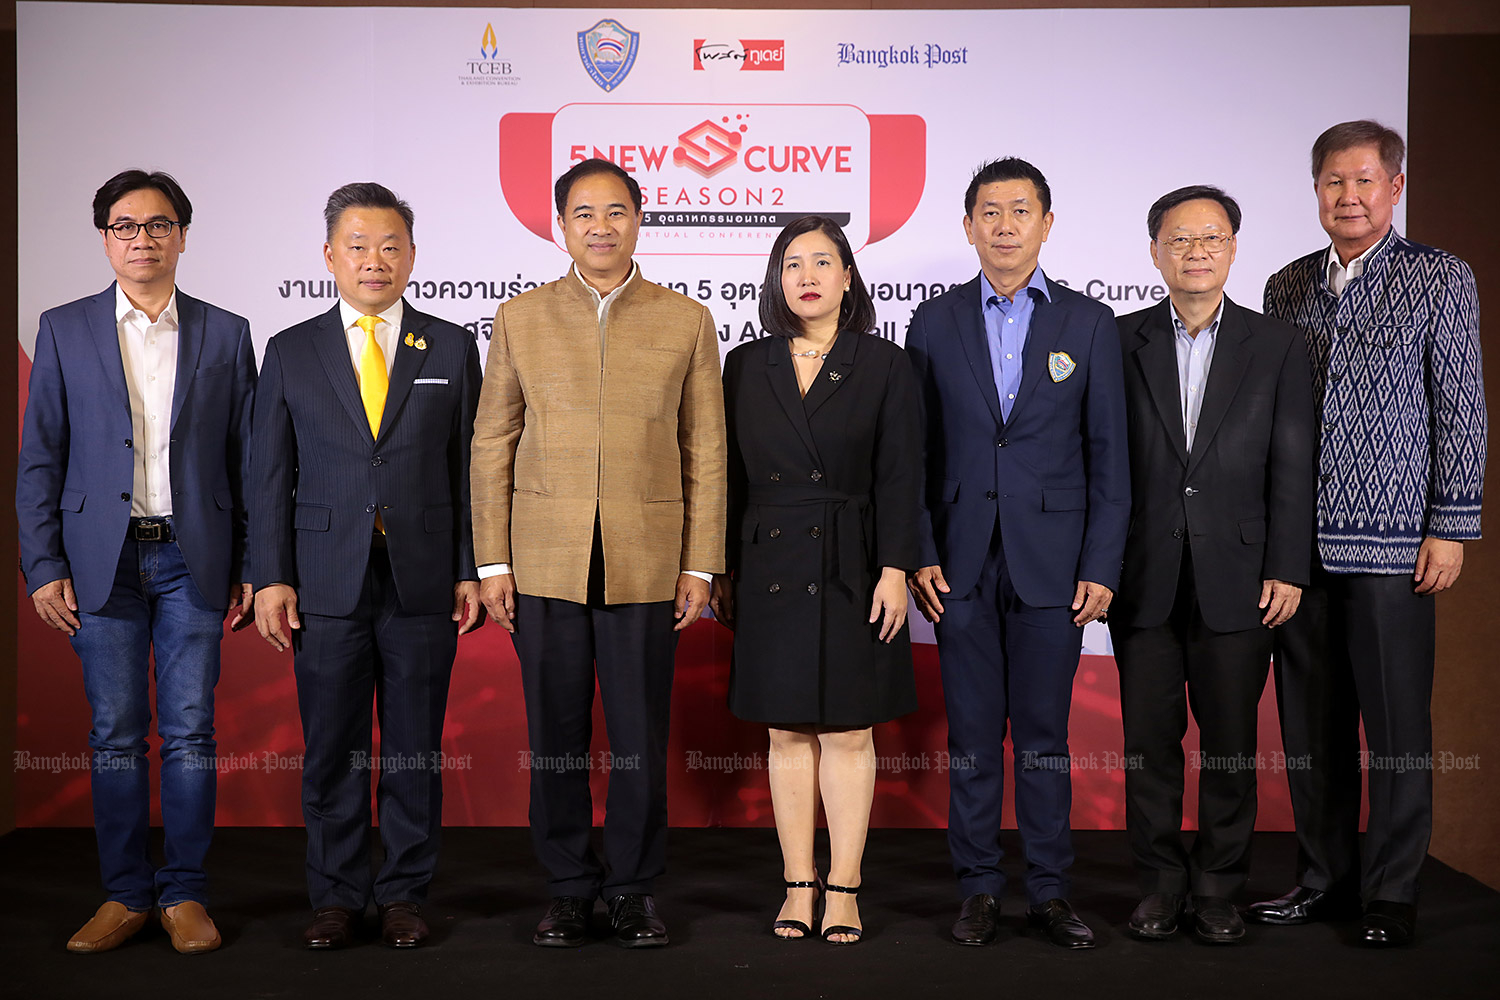 From leftWut Nontarit, Post Today editor; Salanroj Sutaschuto, director of the Central and Eastern Regional Office of the Thailand Convention & Exhibition Bureau (TCEB); Kalin Sarasin, chairman of Thai Chamber of Commerce (TCC); and Sirima Limviriyalers, Senior Executive Vice President of Bangkok Post Plc join other executives from the TCC in a group photo at a press conference held on Thursday to announce the organisation of the 'New S-curve Season 2 Virtual Conference'. (Photo by Chanat Katanyu)